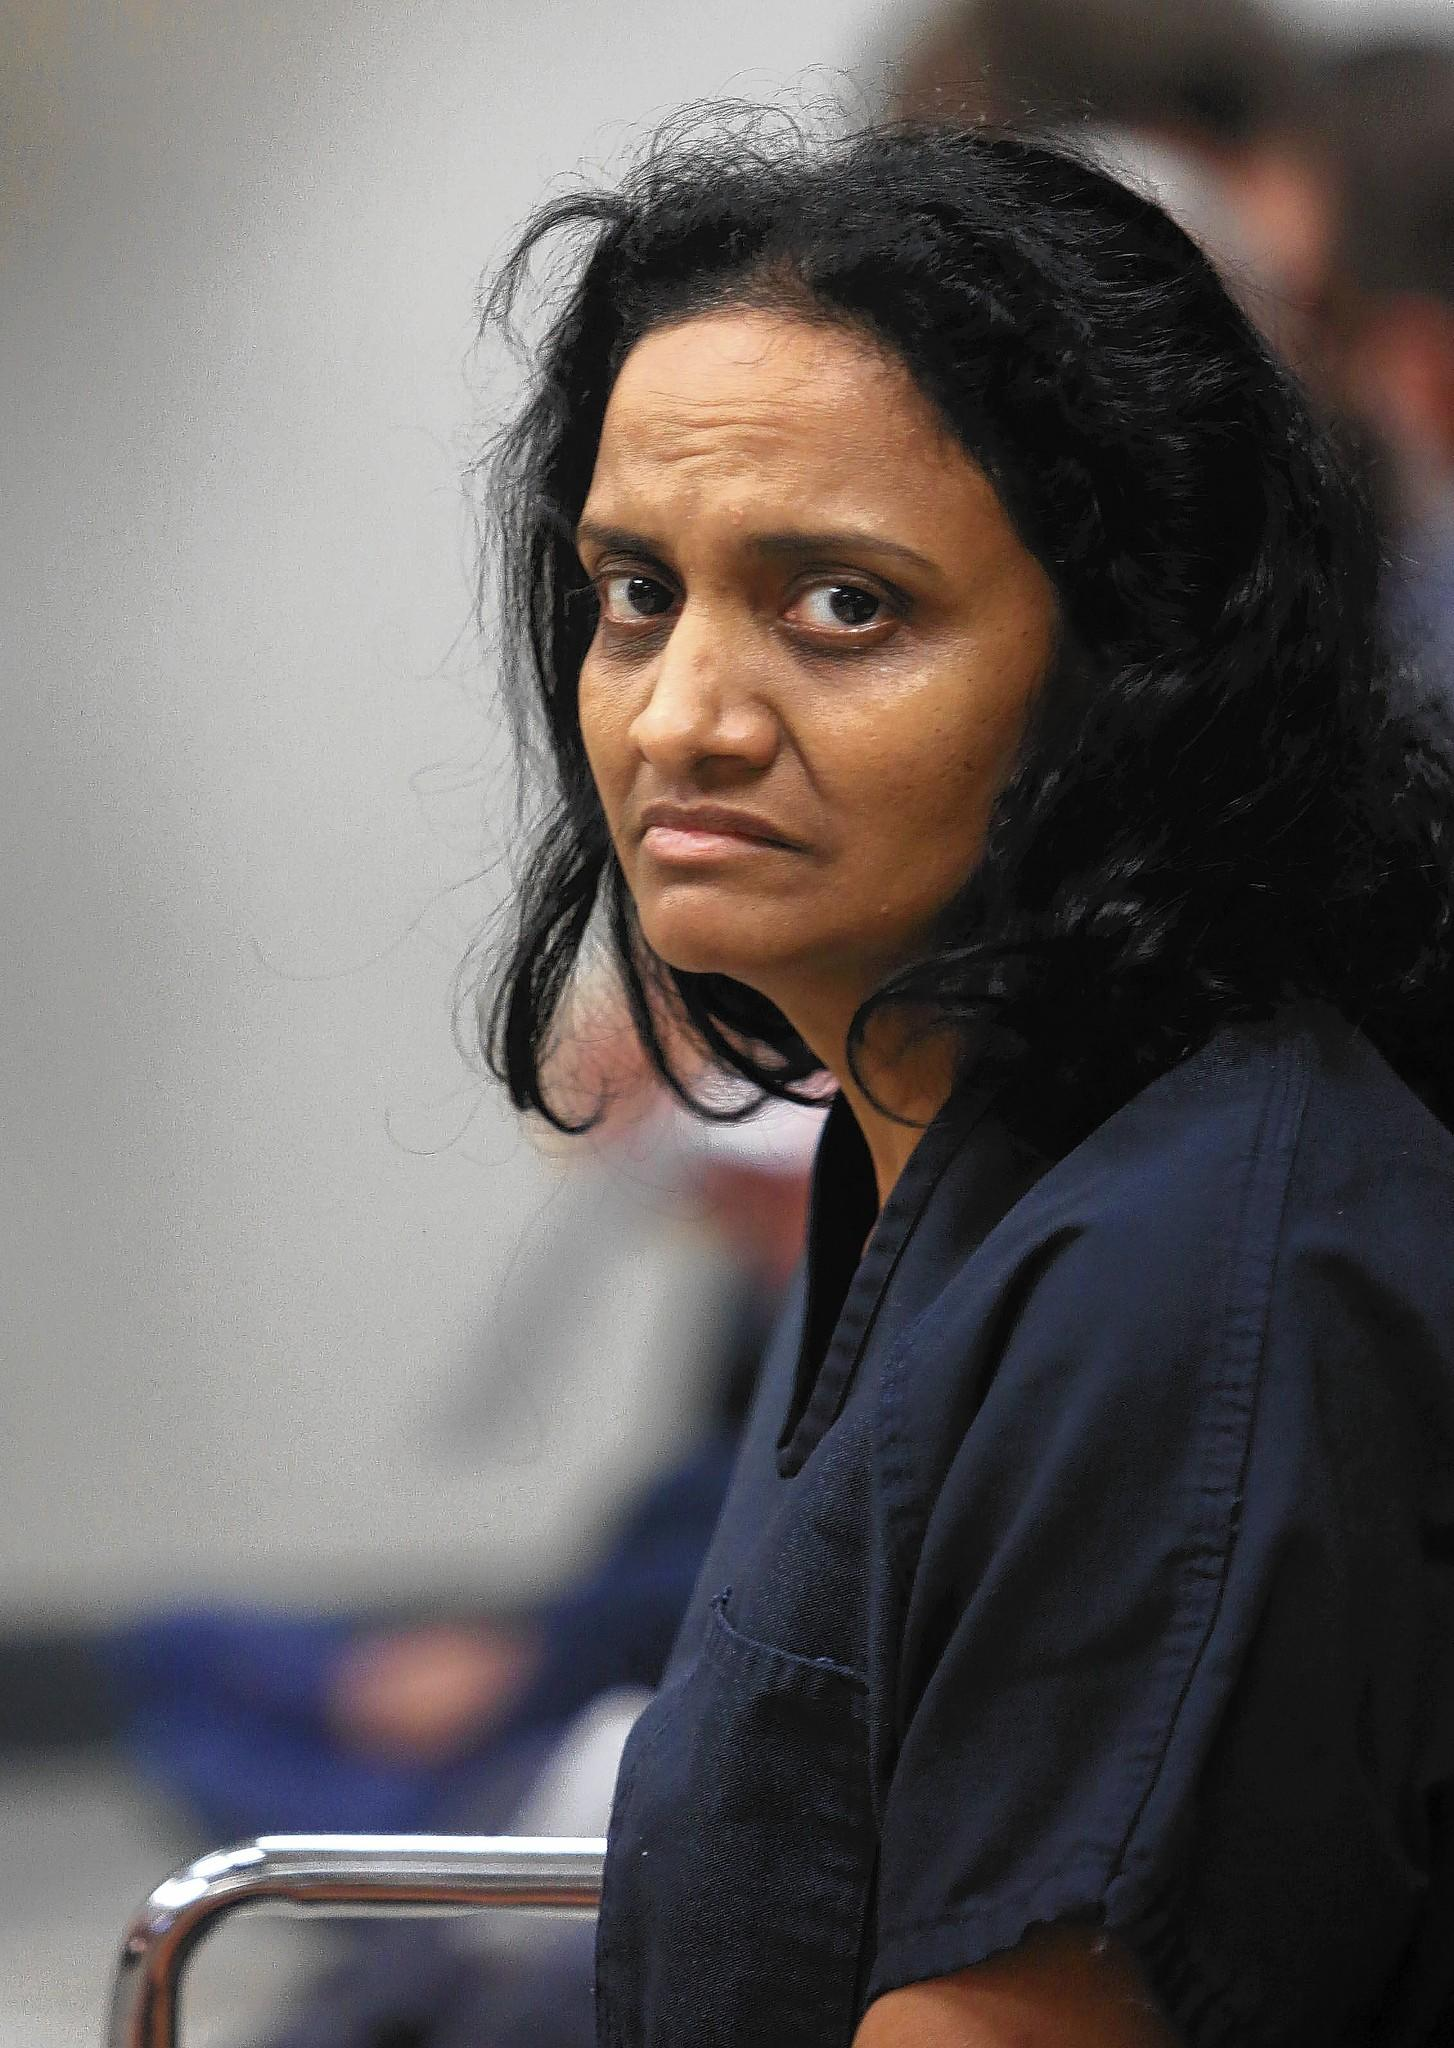 Sujatha Guduru during her first appearance hearing at the Seminole County jail on Friday, January 30, 2014. The Oviedo mom accused of killing her 17-year-old daughter in a failed homicide-suicide attempt Monday.